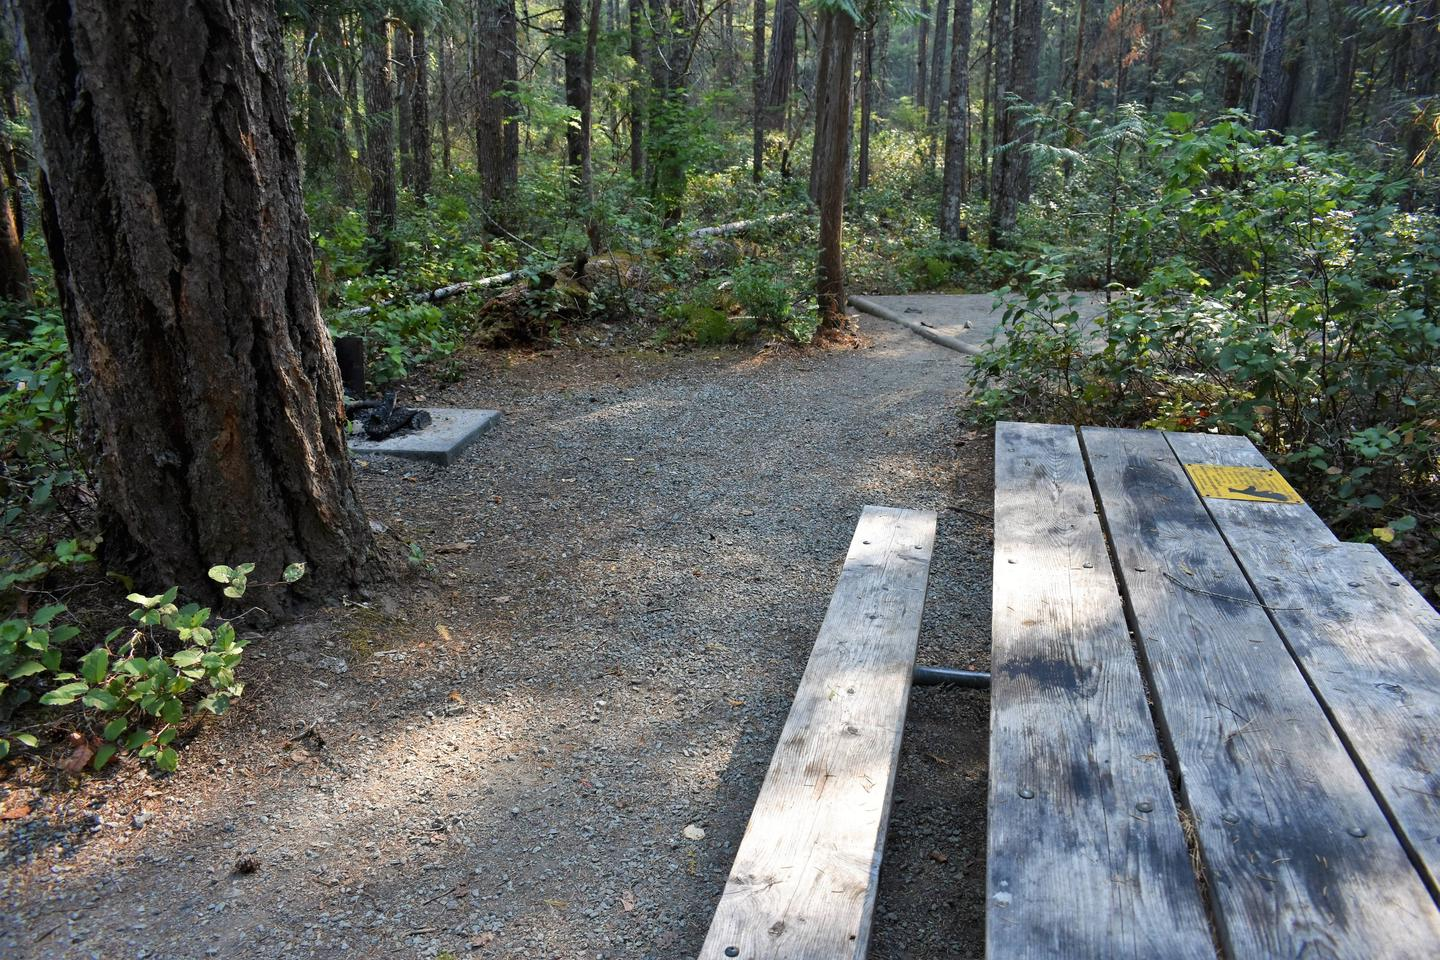 Fire ring, picnic table, and tent padView of campsite